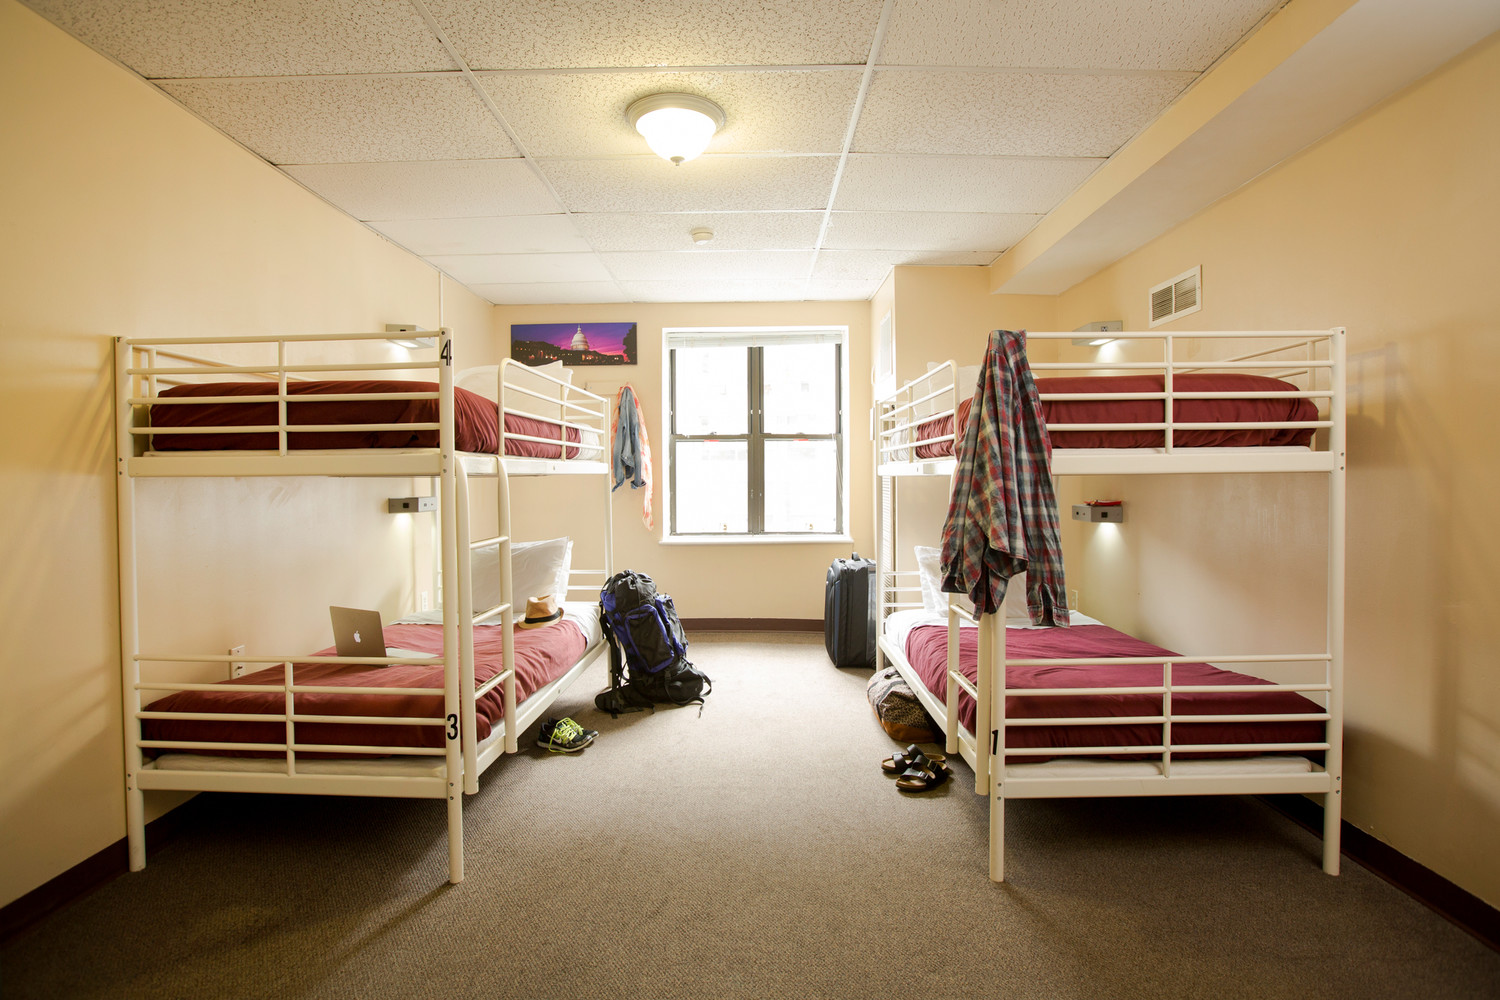 Stay in Dorm - Female Room